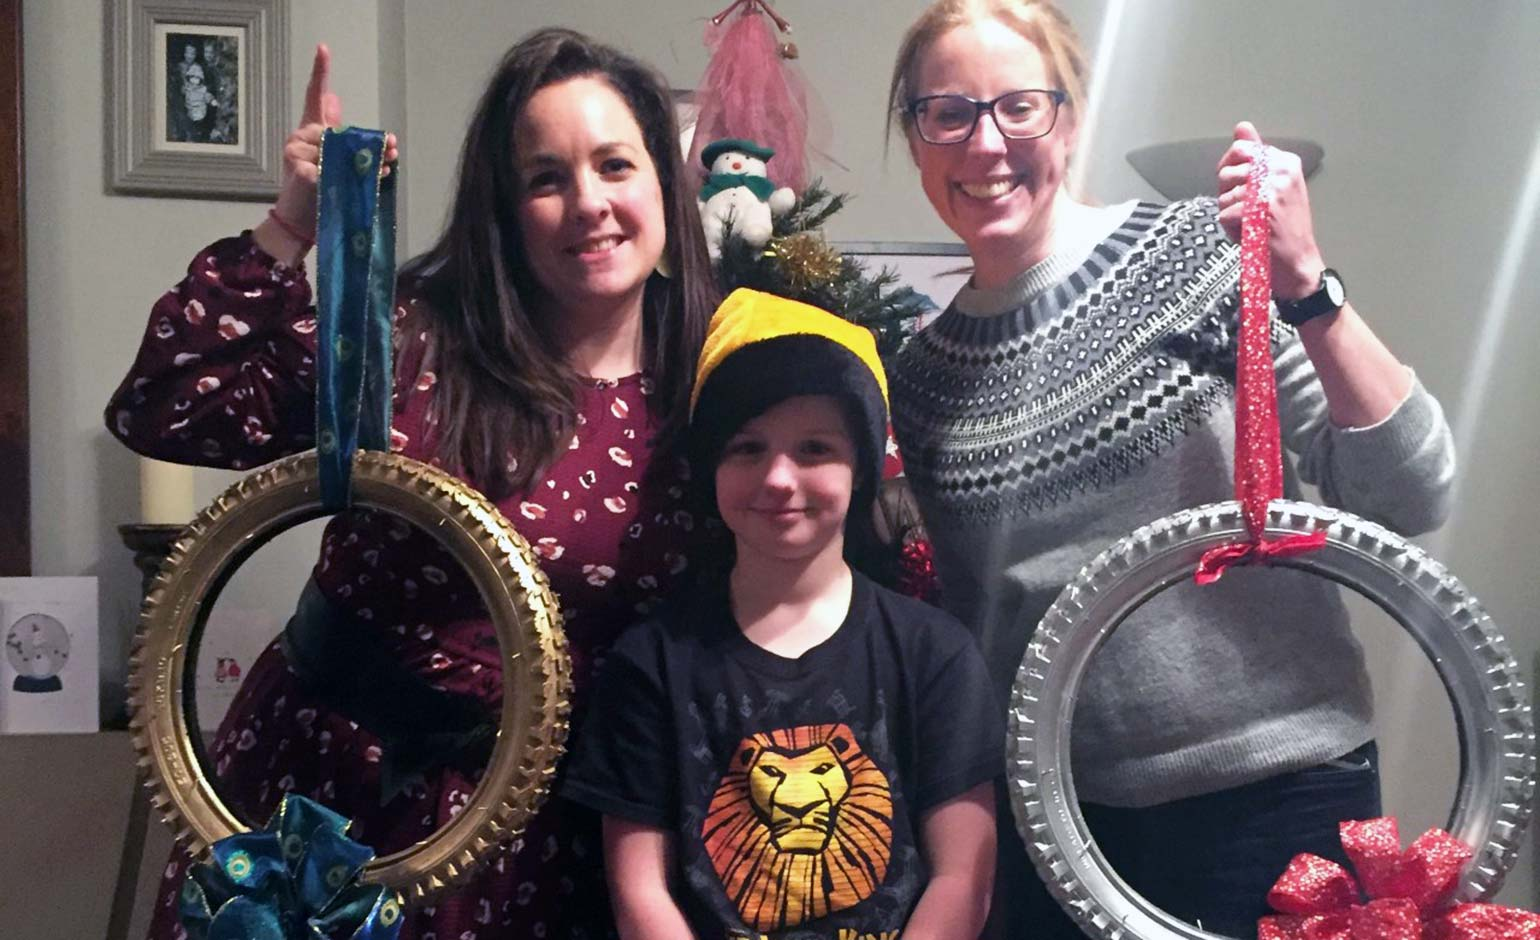 11-year-old sells wreaths made from old bike tyres in aid of Julian House